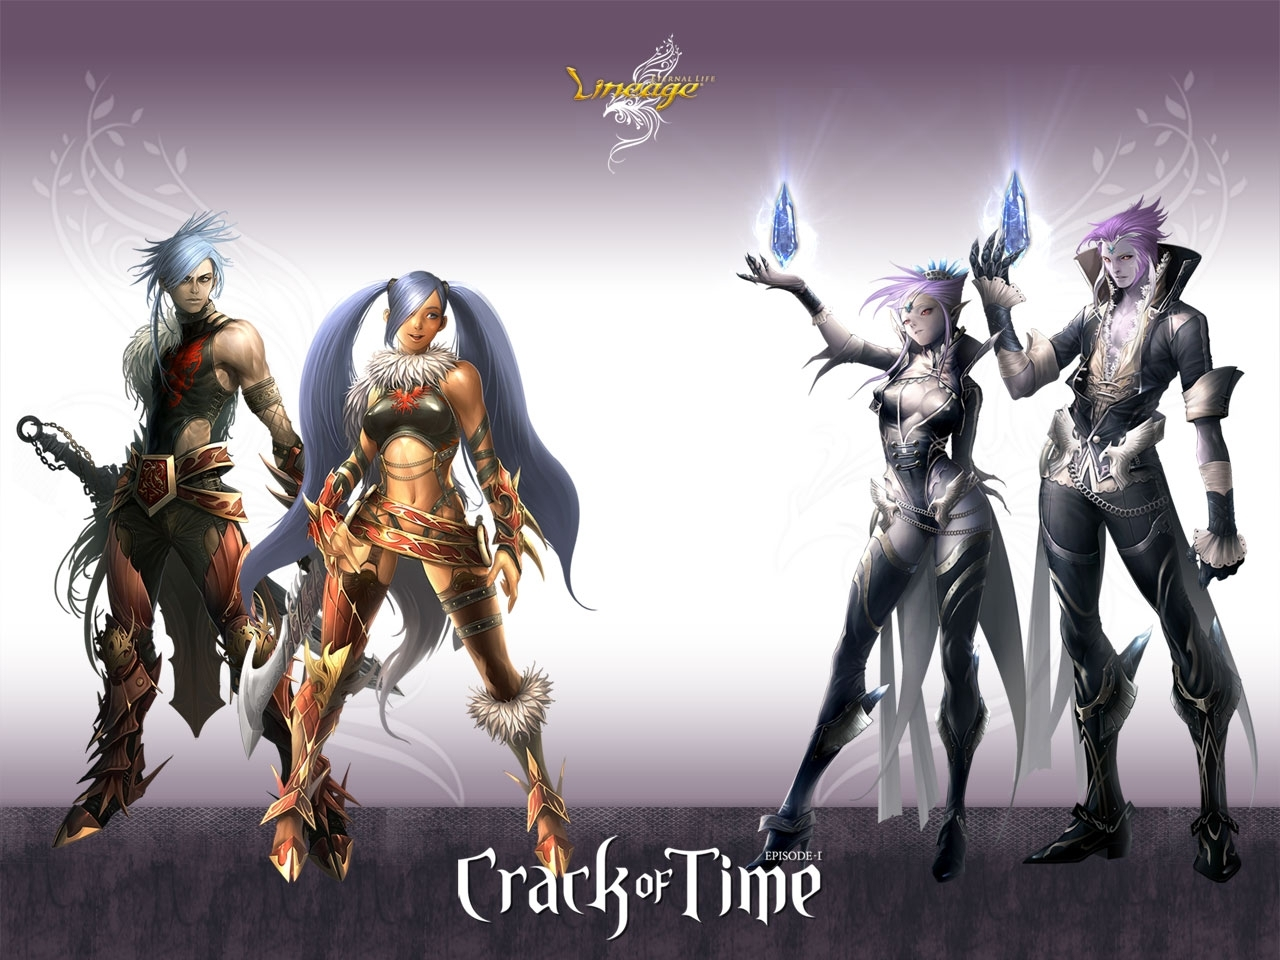 Crack of Time by GameMaster